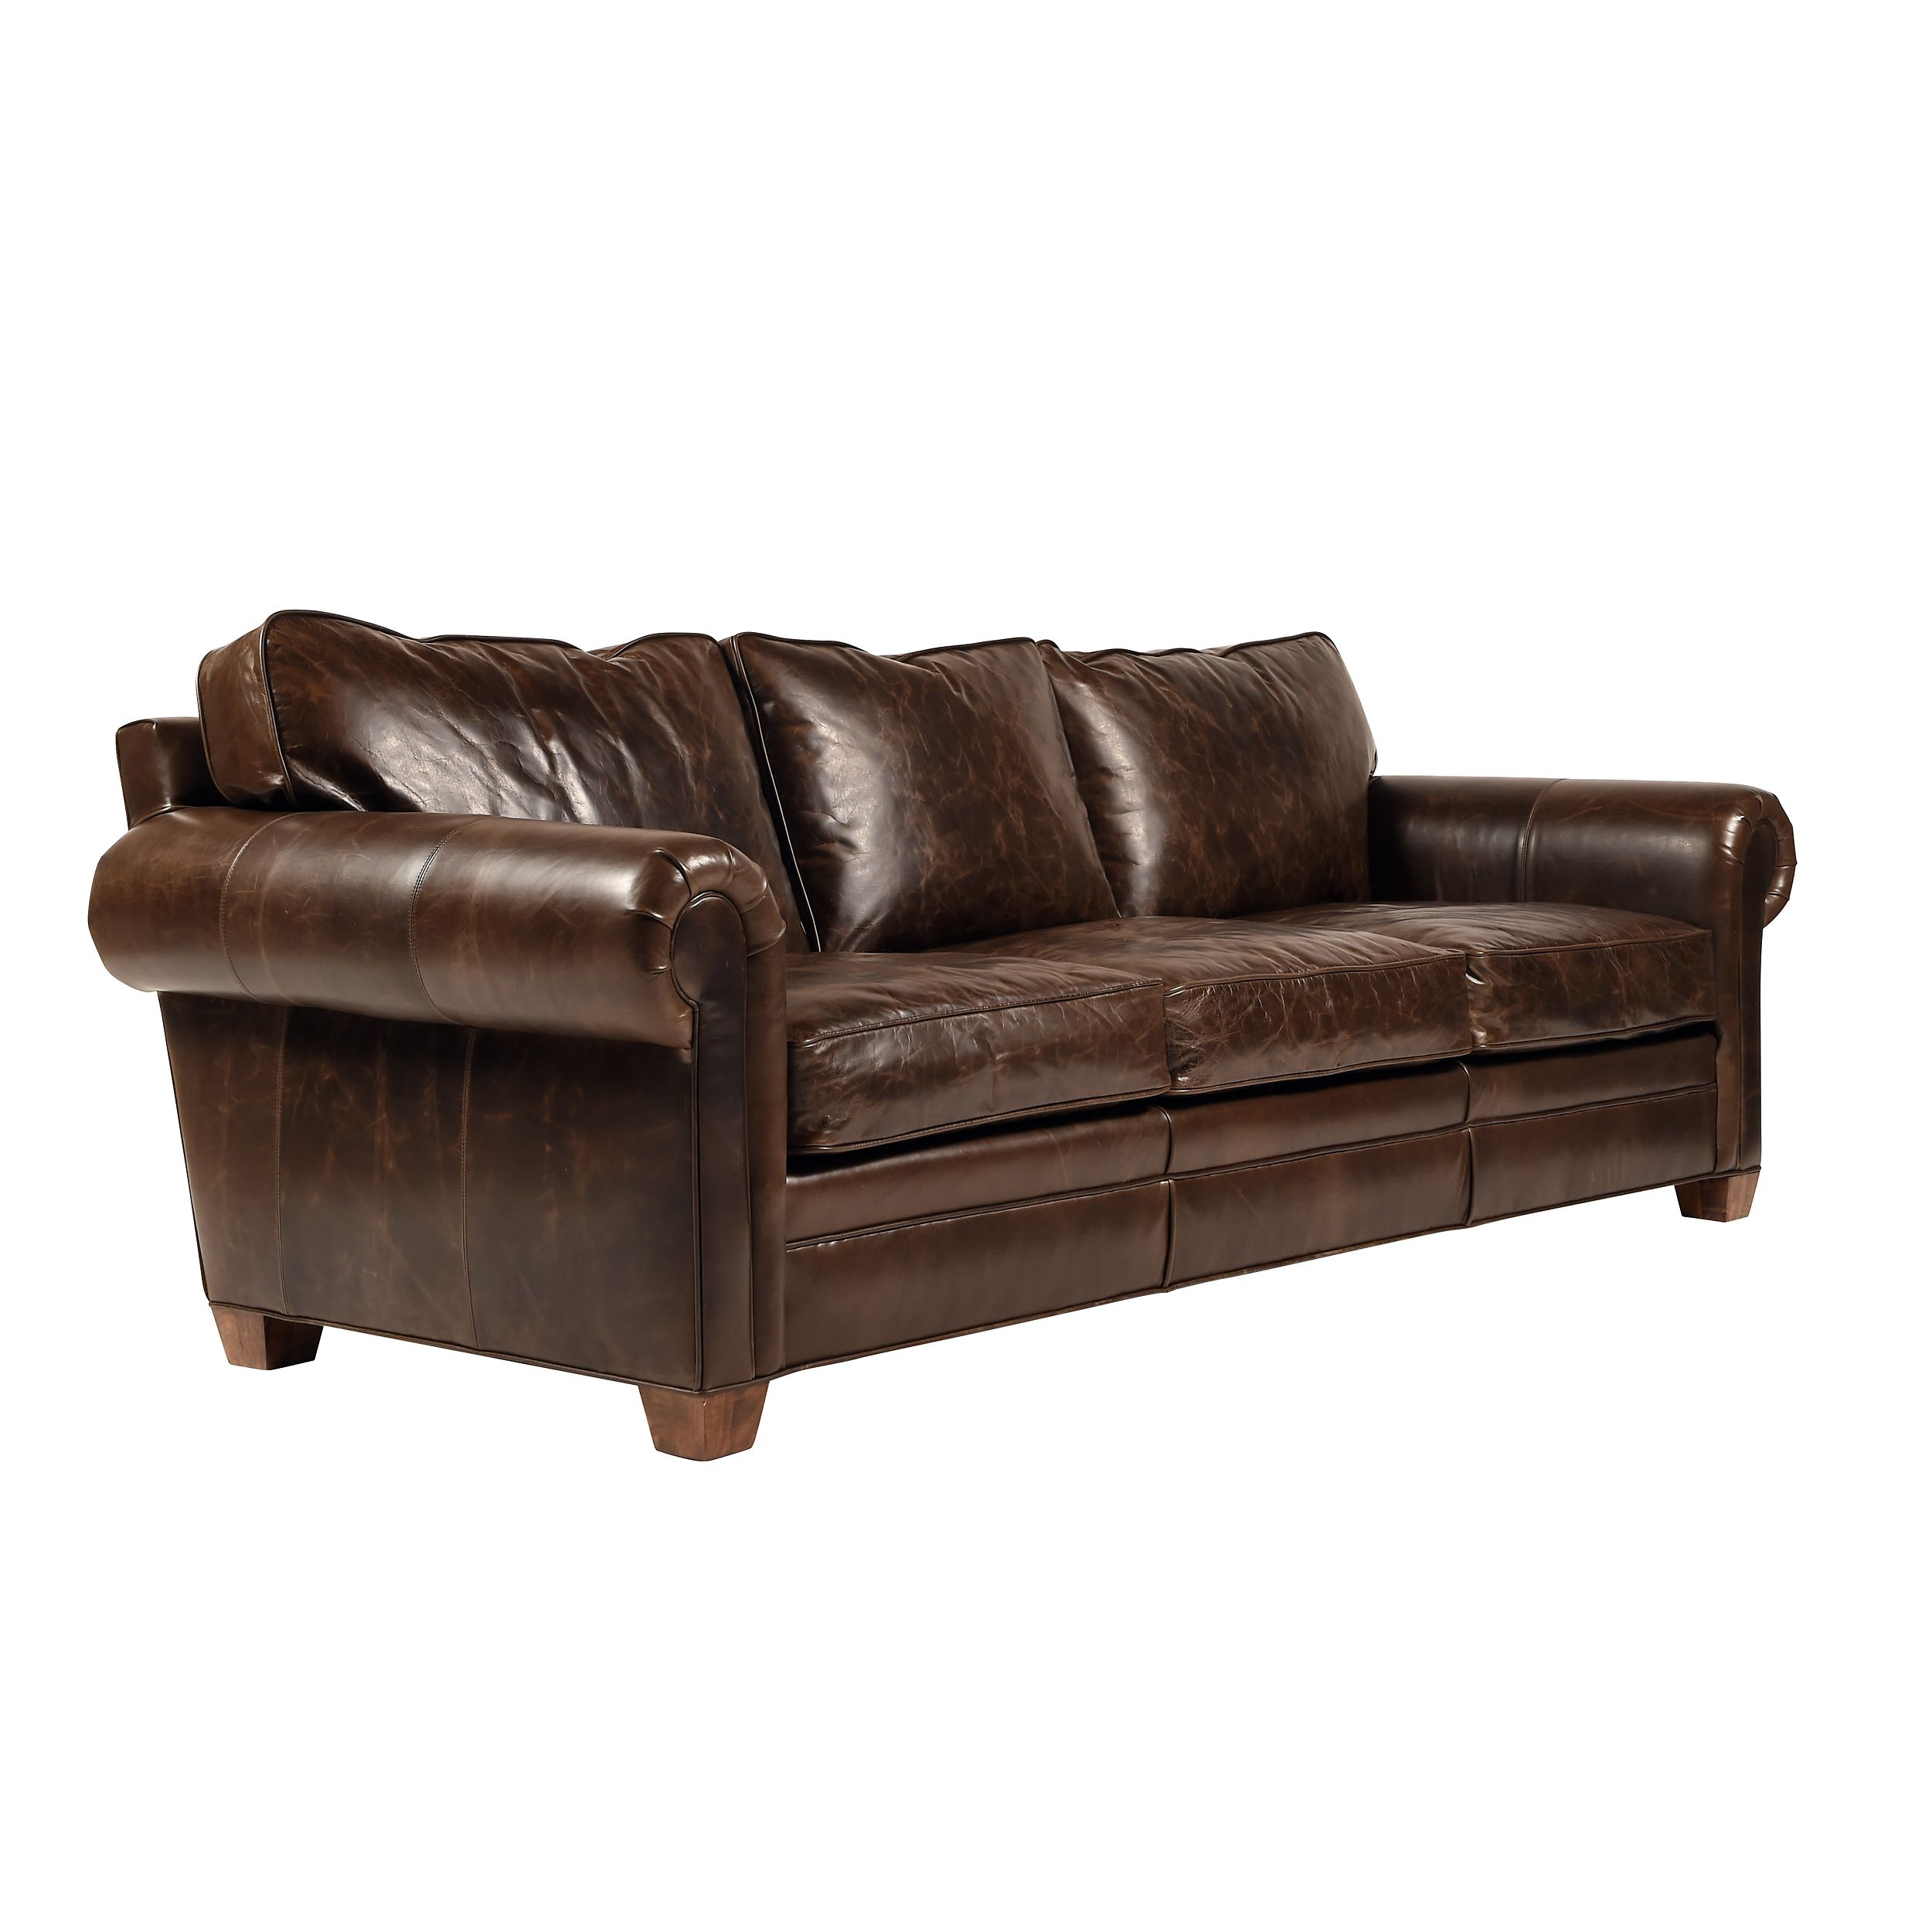 This Classic Coronado Sofa Will Add A Touch Of Sophistication To Your Den  Or Living Room